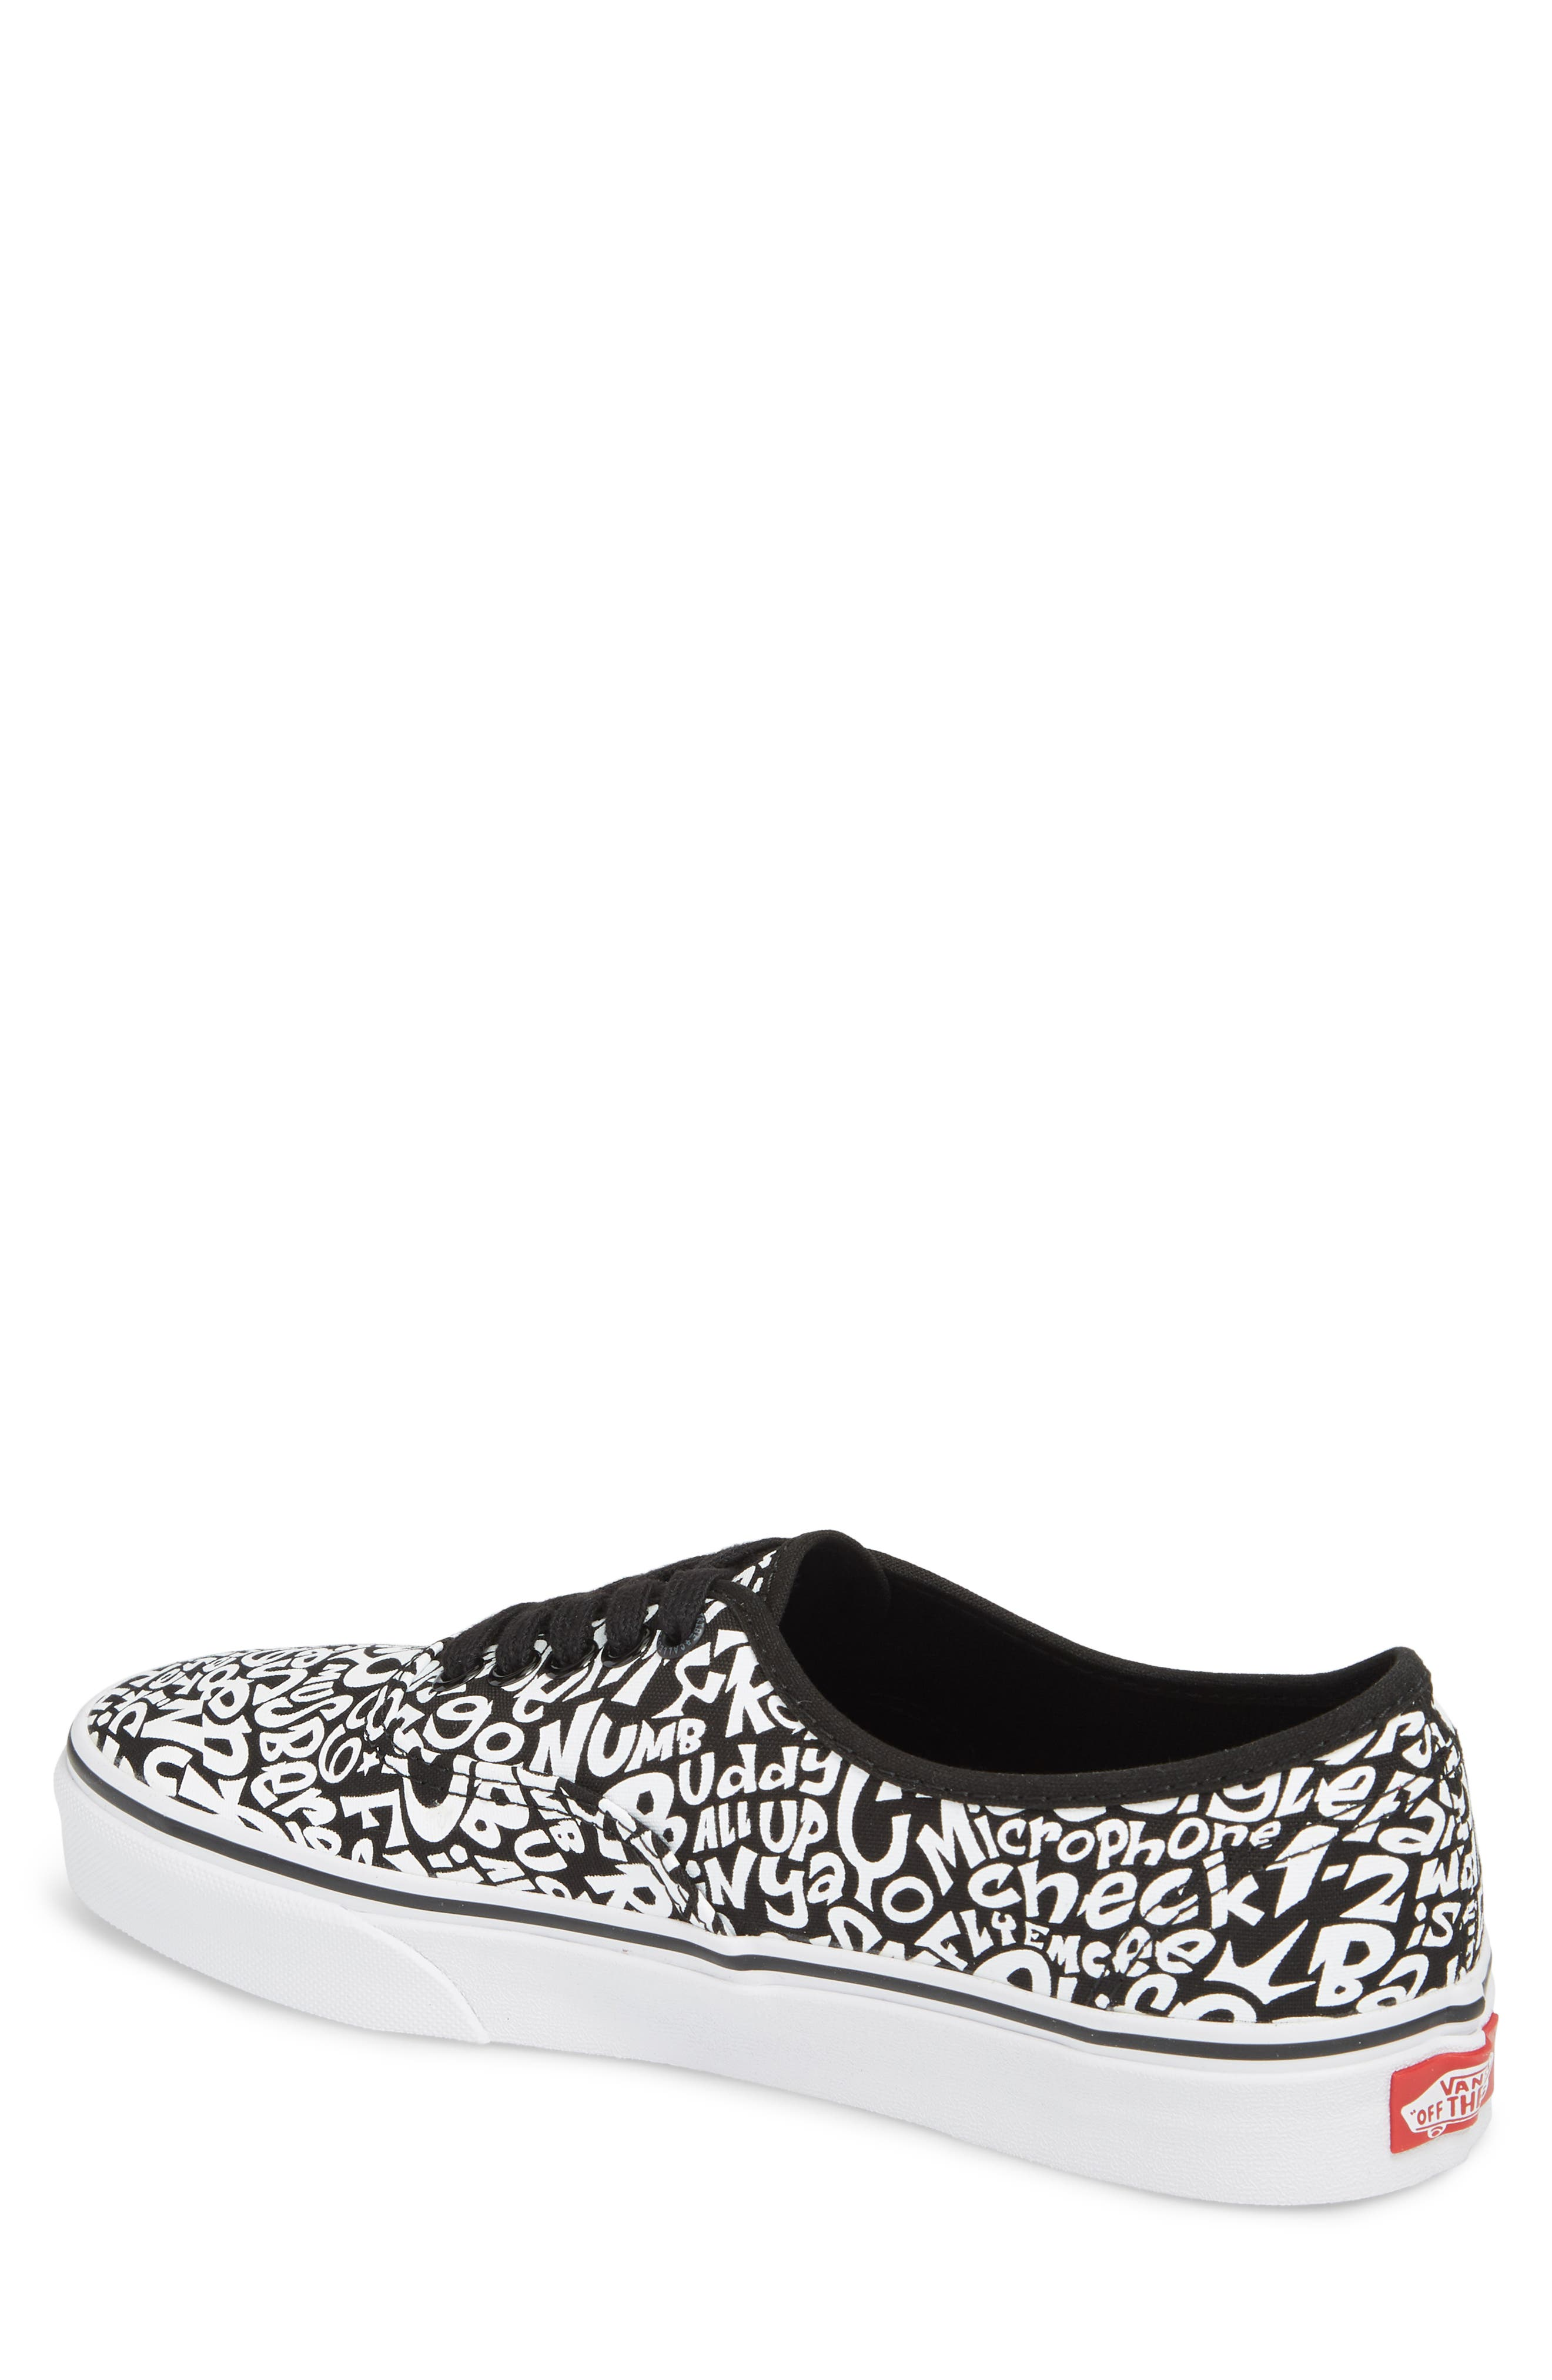 x A Tribe Called Quest UA Authentic Sneaker,                             Alternate thumbnail 2, color,                             Tracklist/ True White